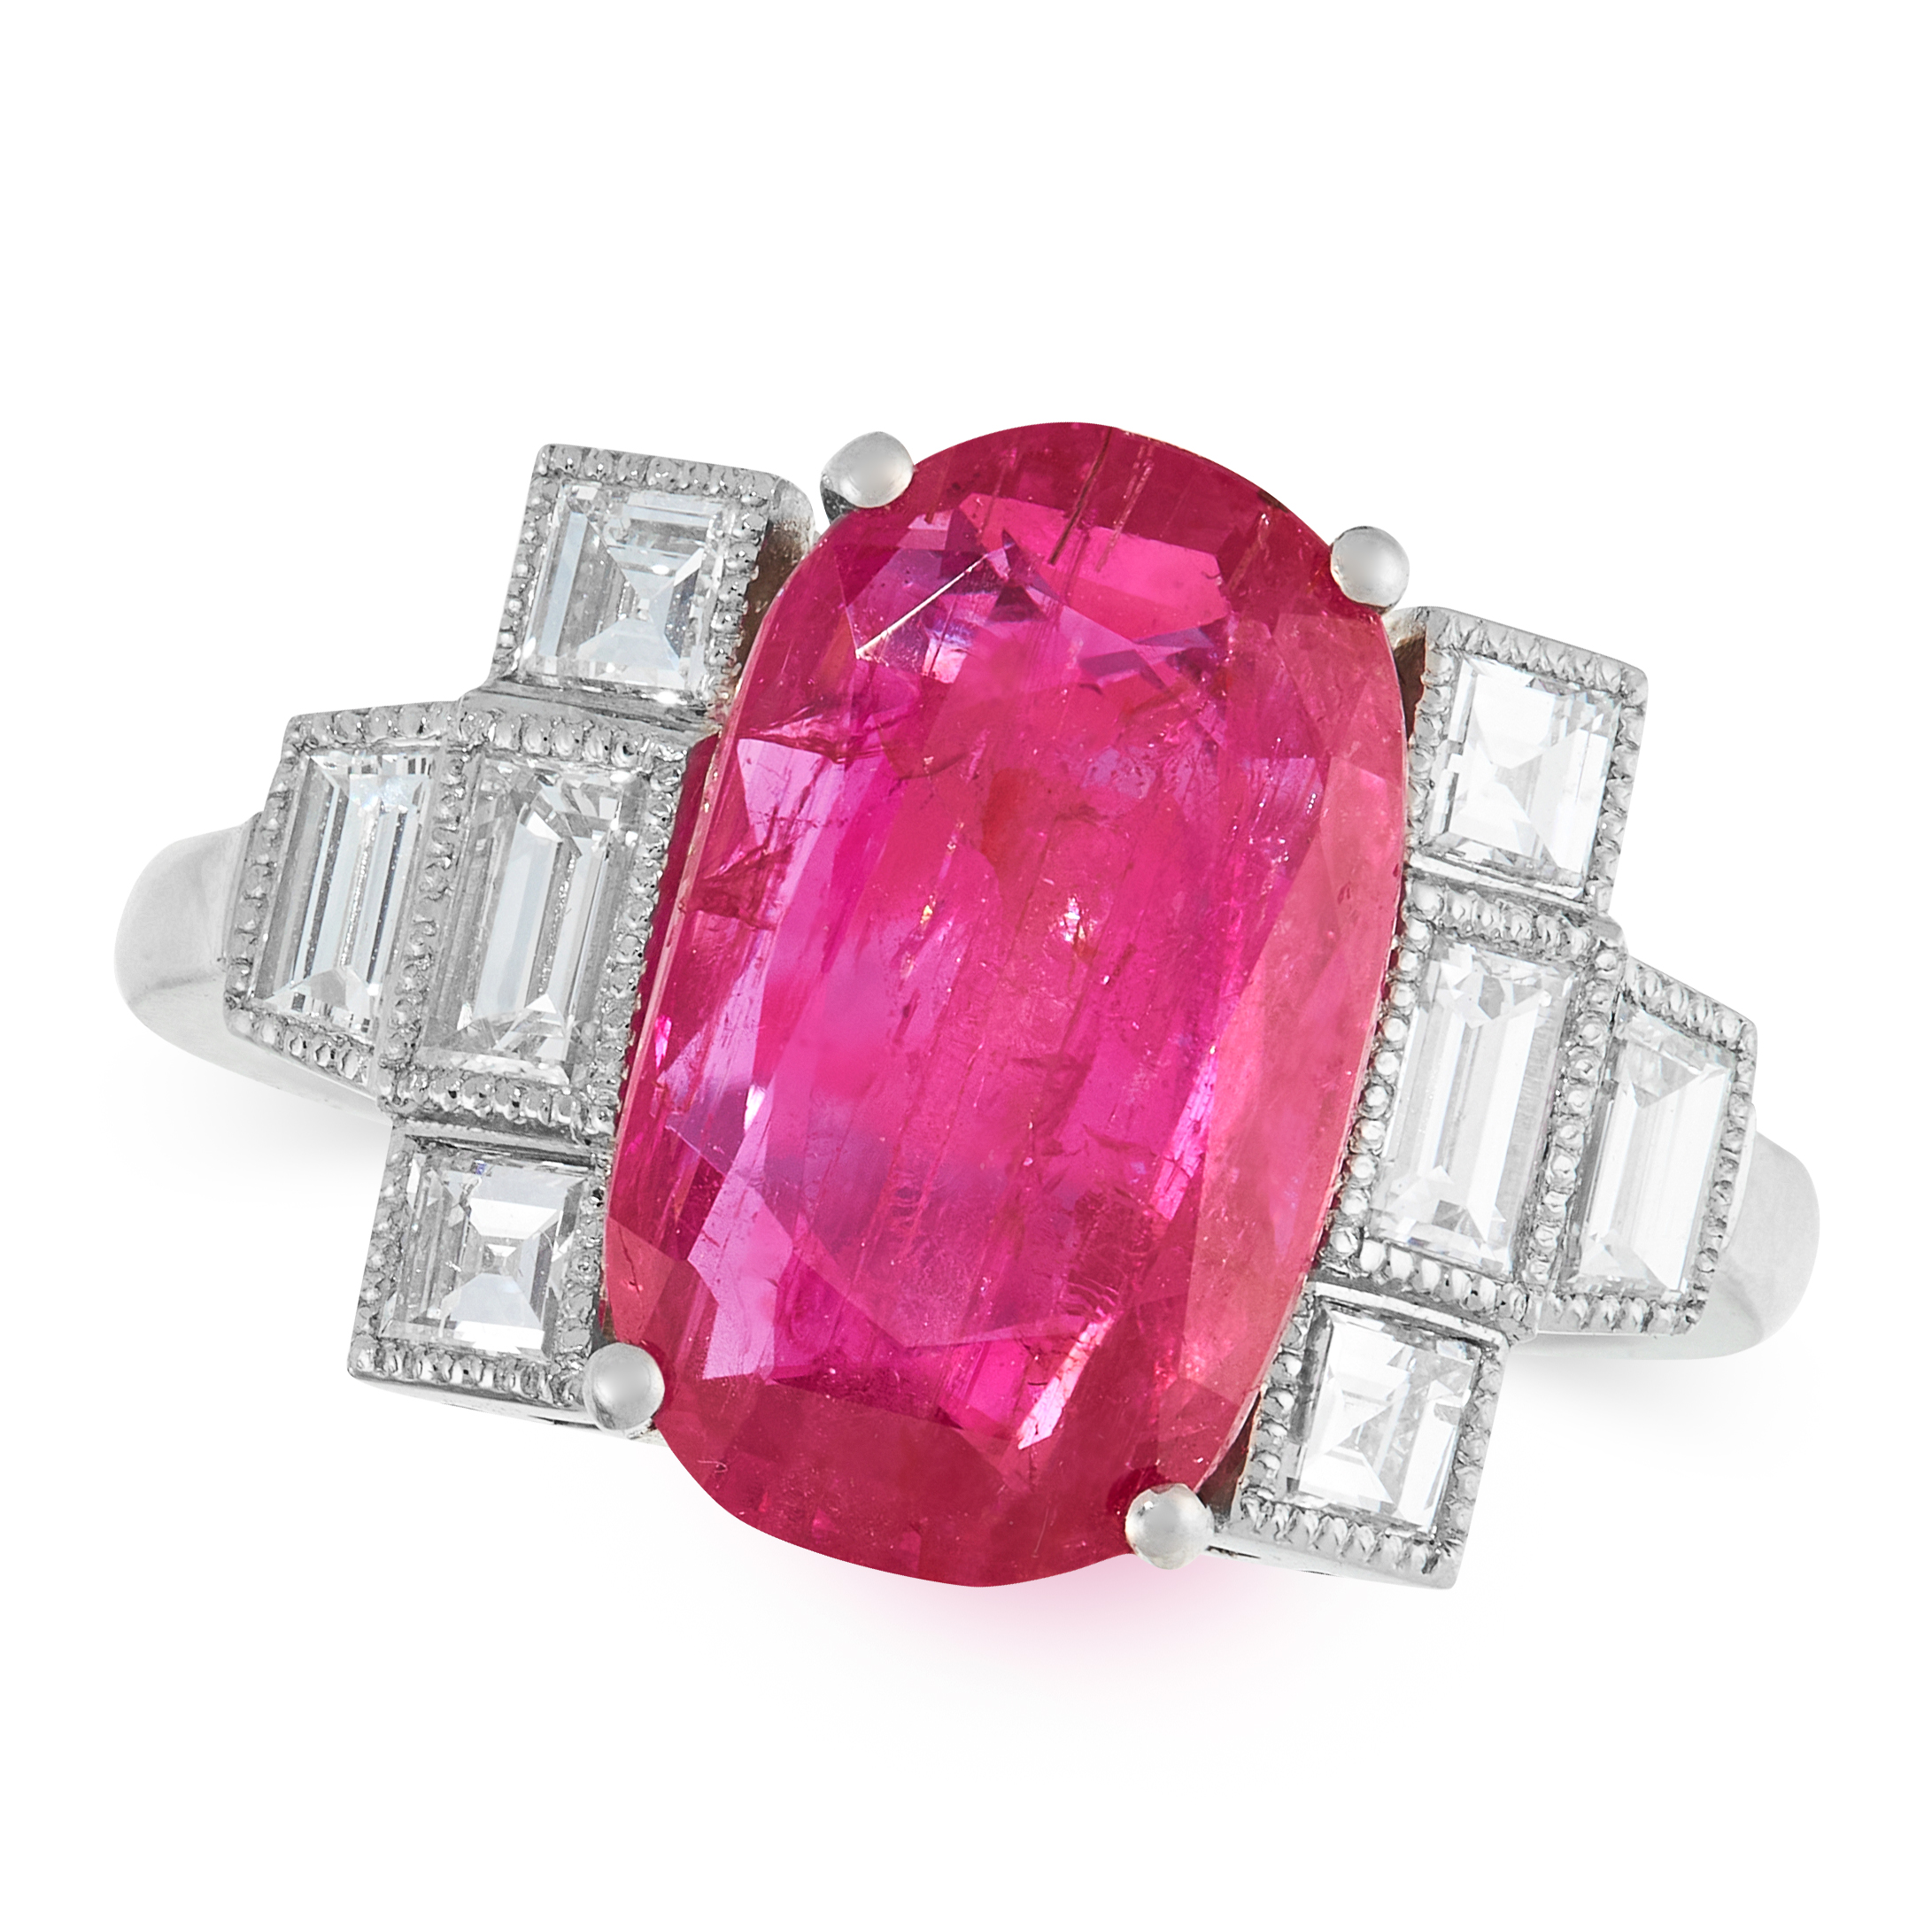 A BURMA NO HEAT RUBY AND DIAMOND RING set with a cushion cut ruby of 5.28 carats, flanked by step